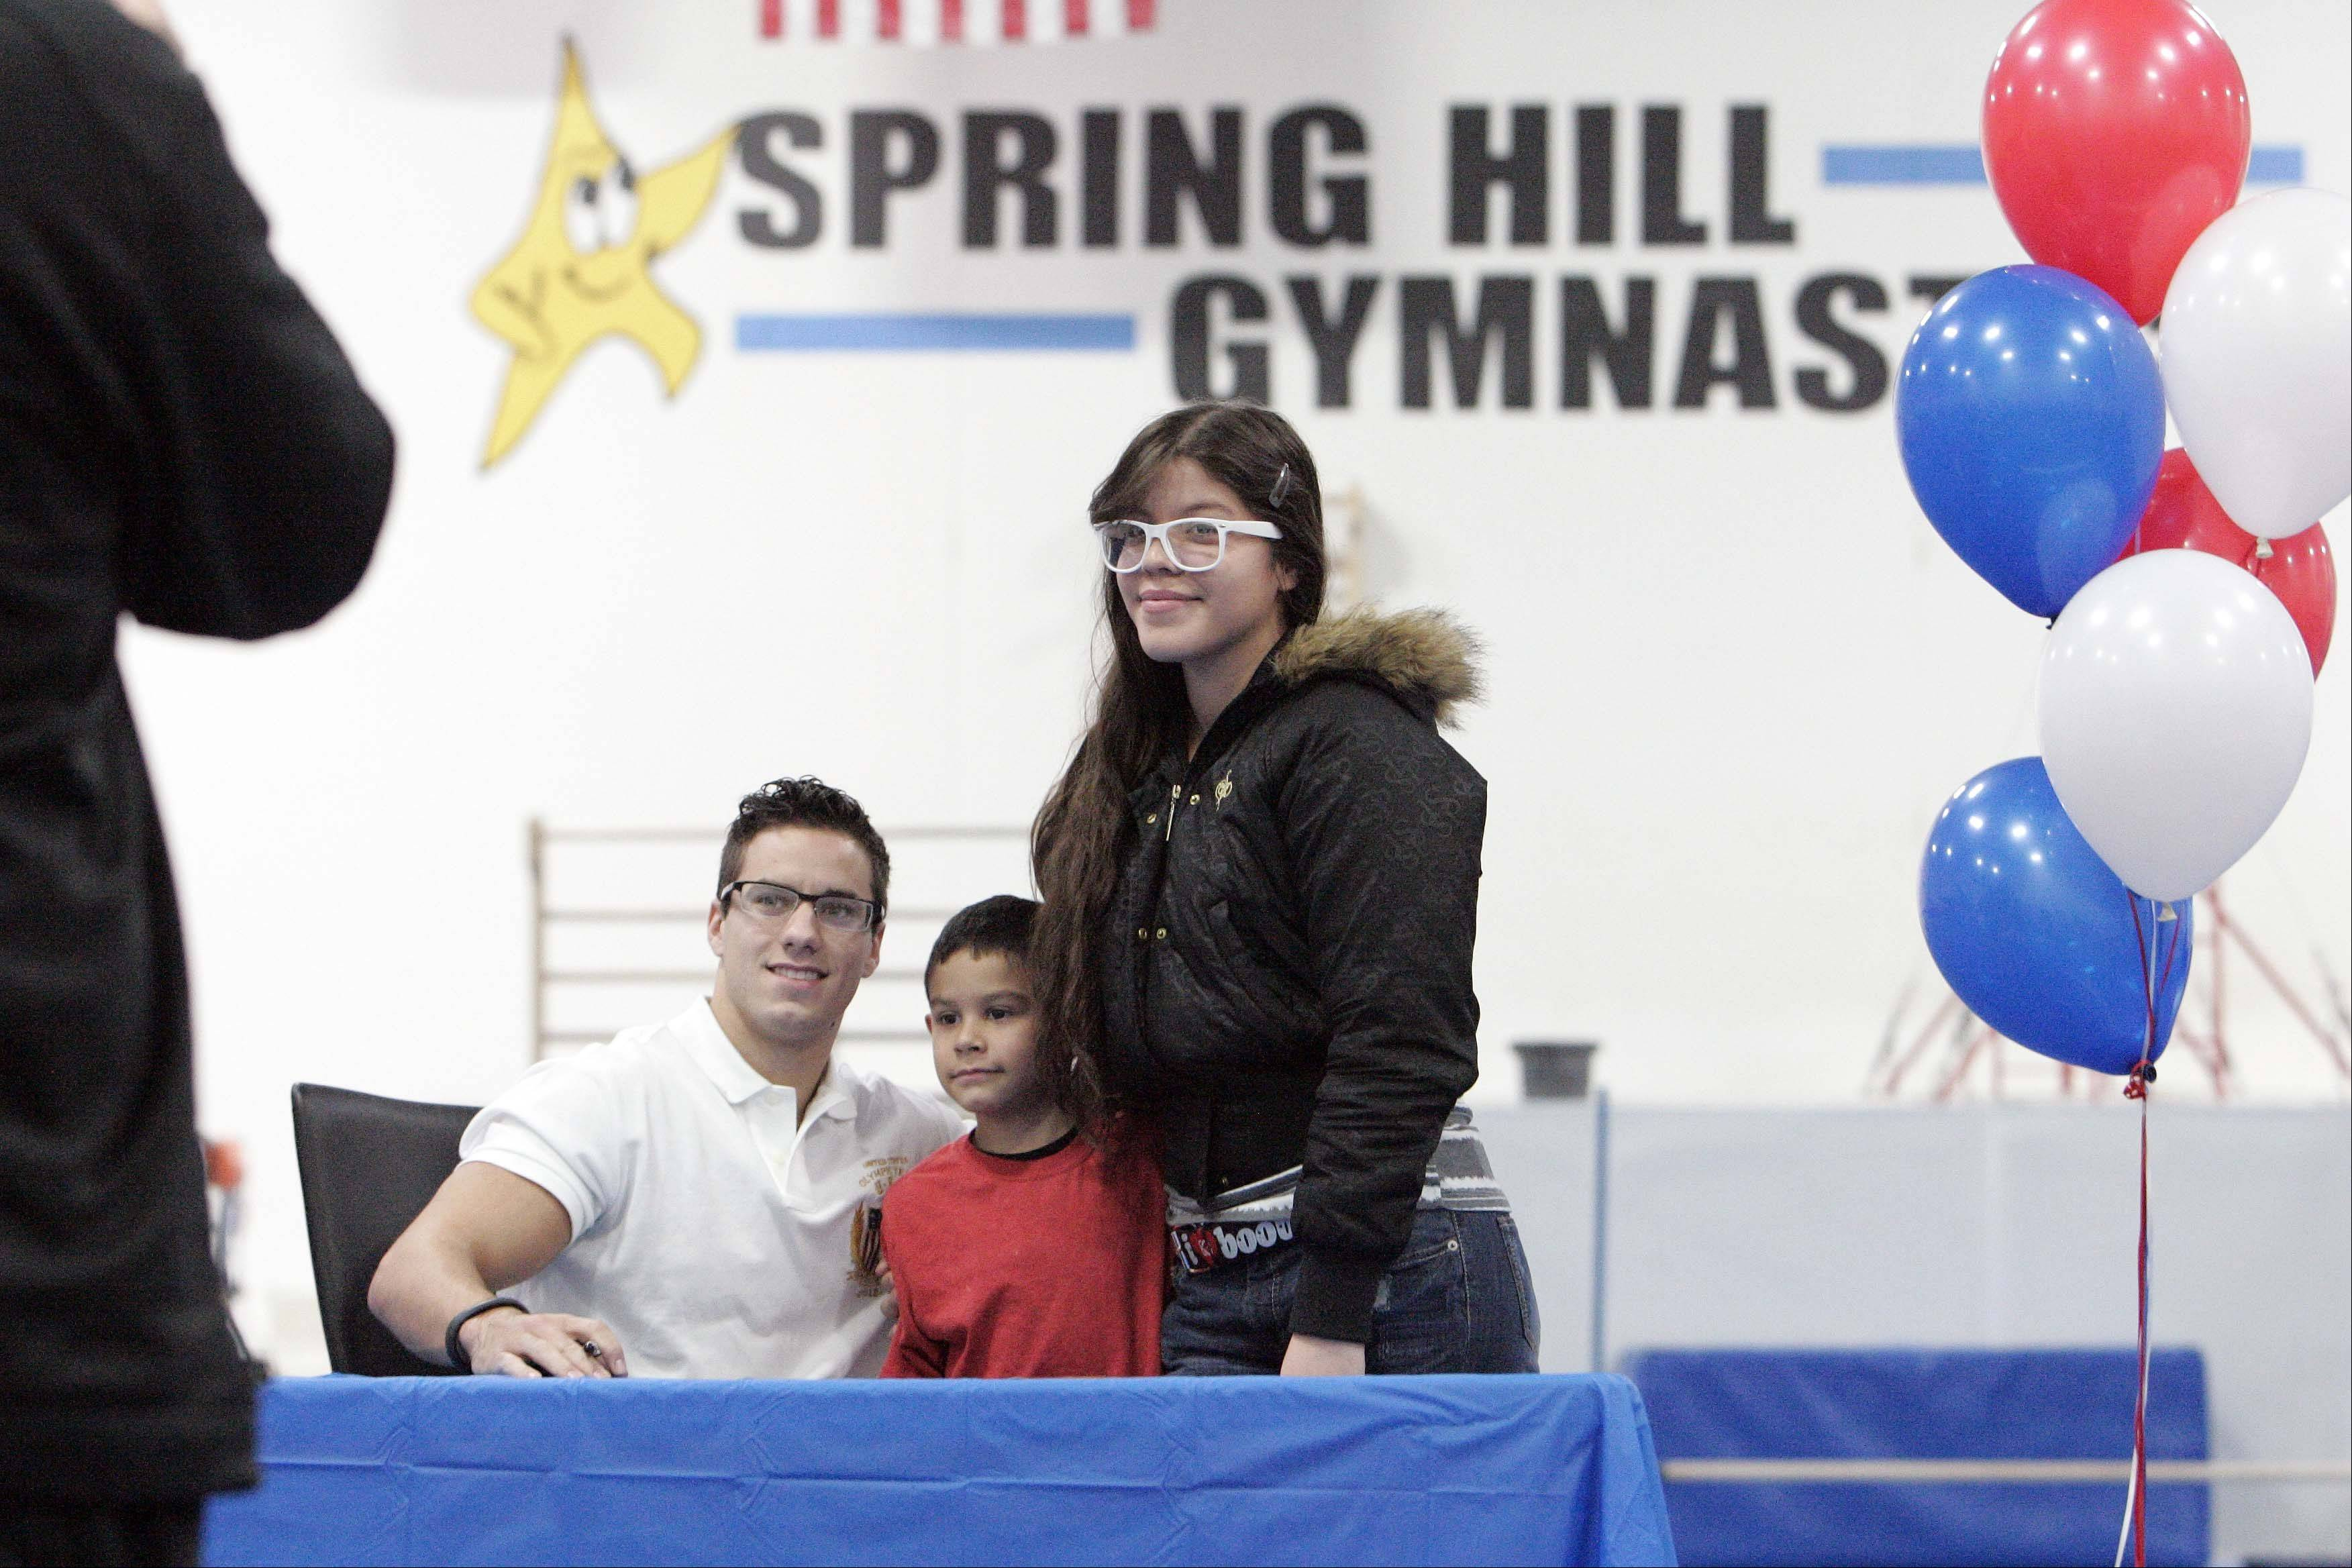 Six-year-old Juan Delgado and his sister Linda Marie Delgado, 18, both of Pingree Grove, get their picture taken with Olympic gymnast Jake Dalton on Saturday at Spring Hill Gymnastics in Elgin.